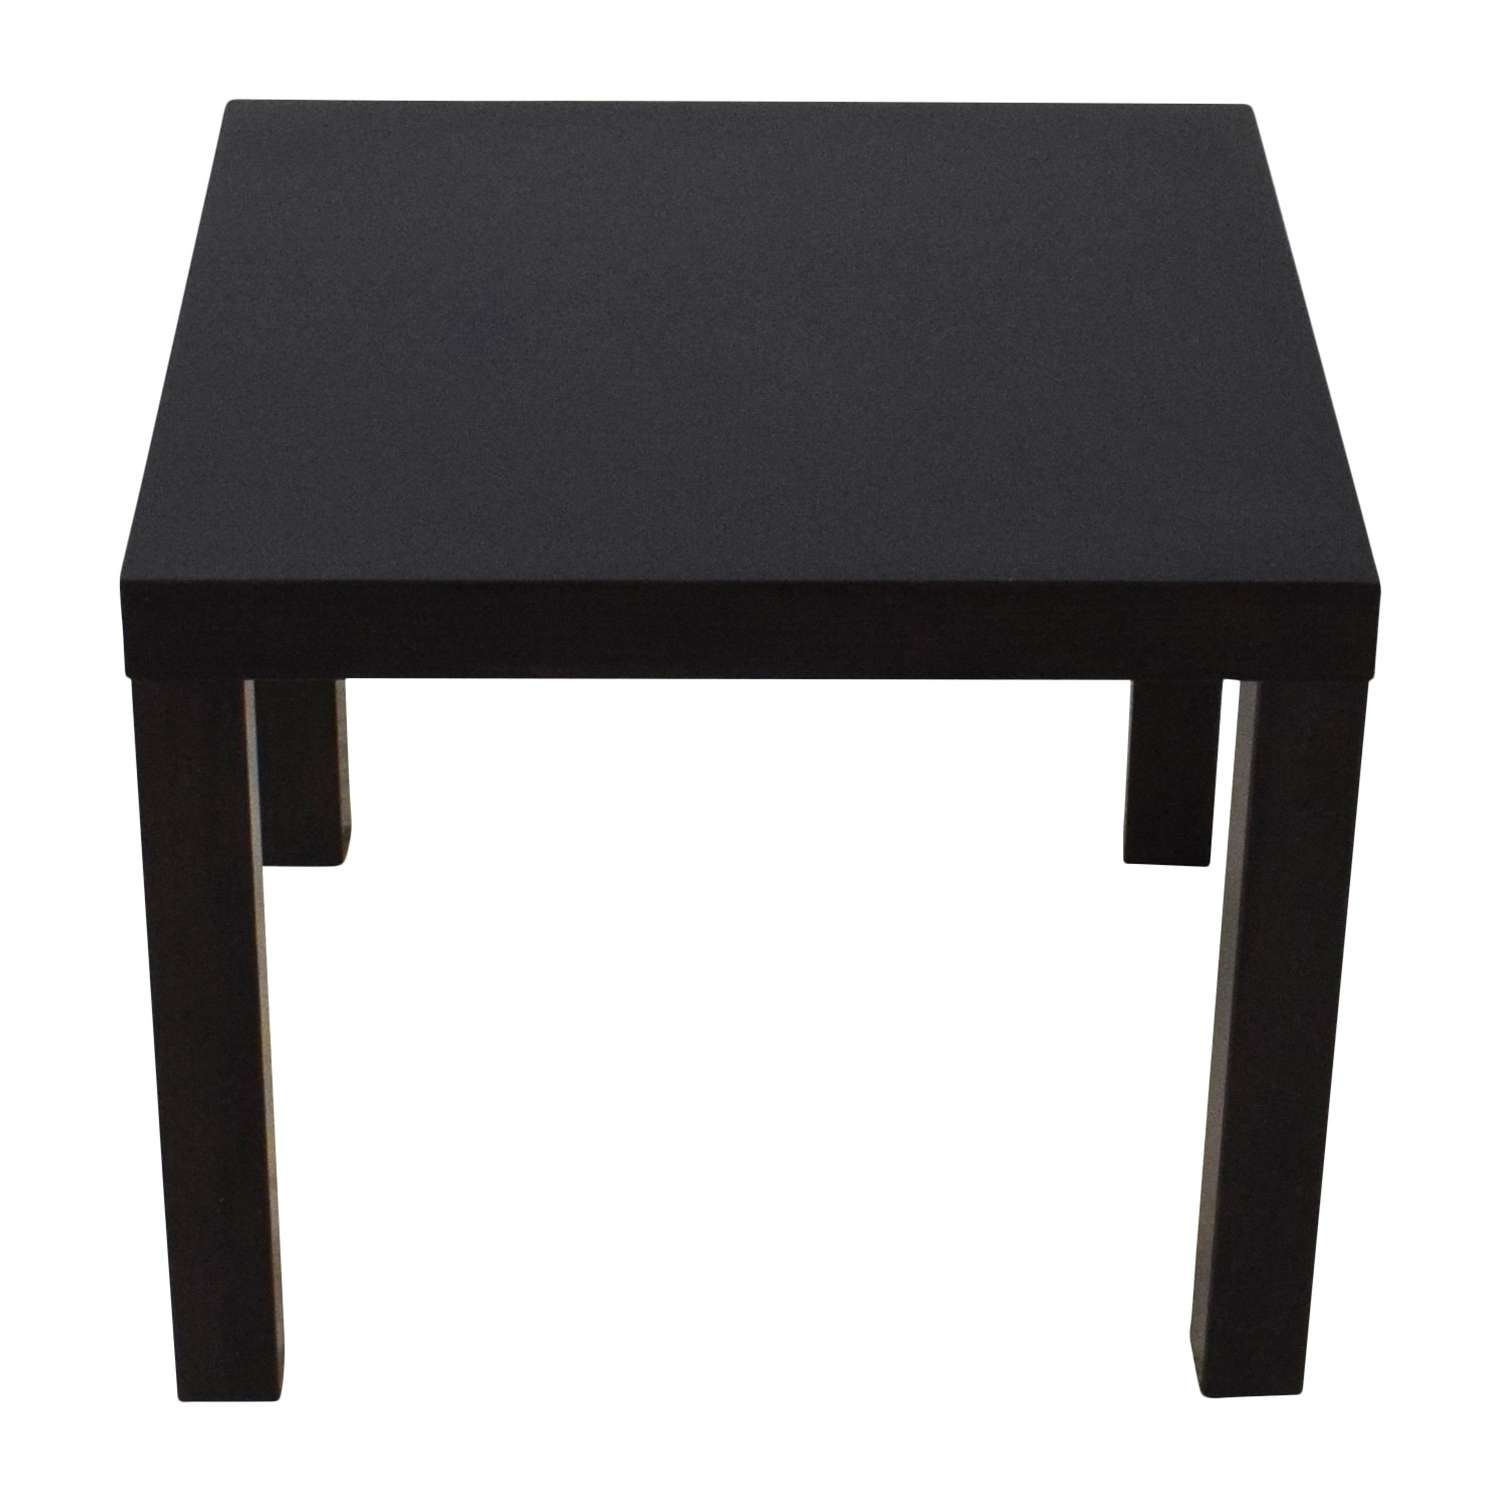 [%Famous Black Coffee Tables With 90% Off – Bloomingdales Black Modern Metal Coffee Table / Tables|90% Off – Bloomingdales Black Modern Metal Coffee Table / Tables Within Fashionable Black Coffee Tables%] (View 2 of 20)